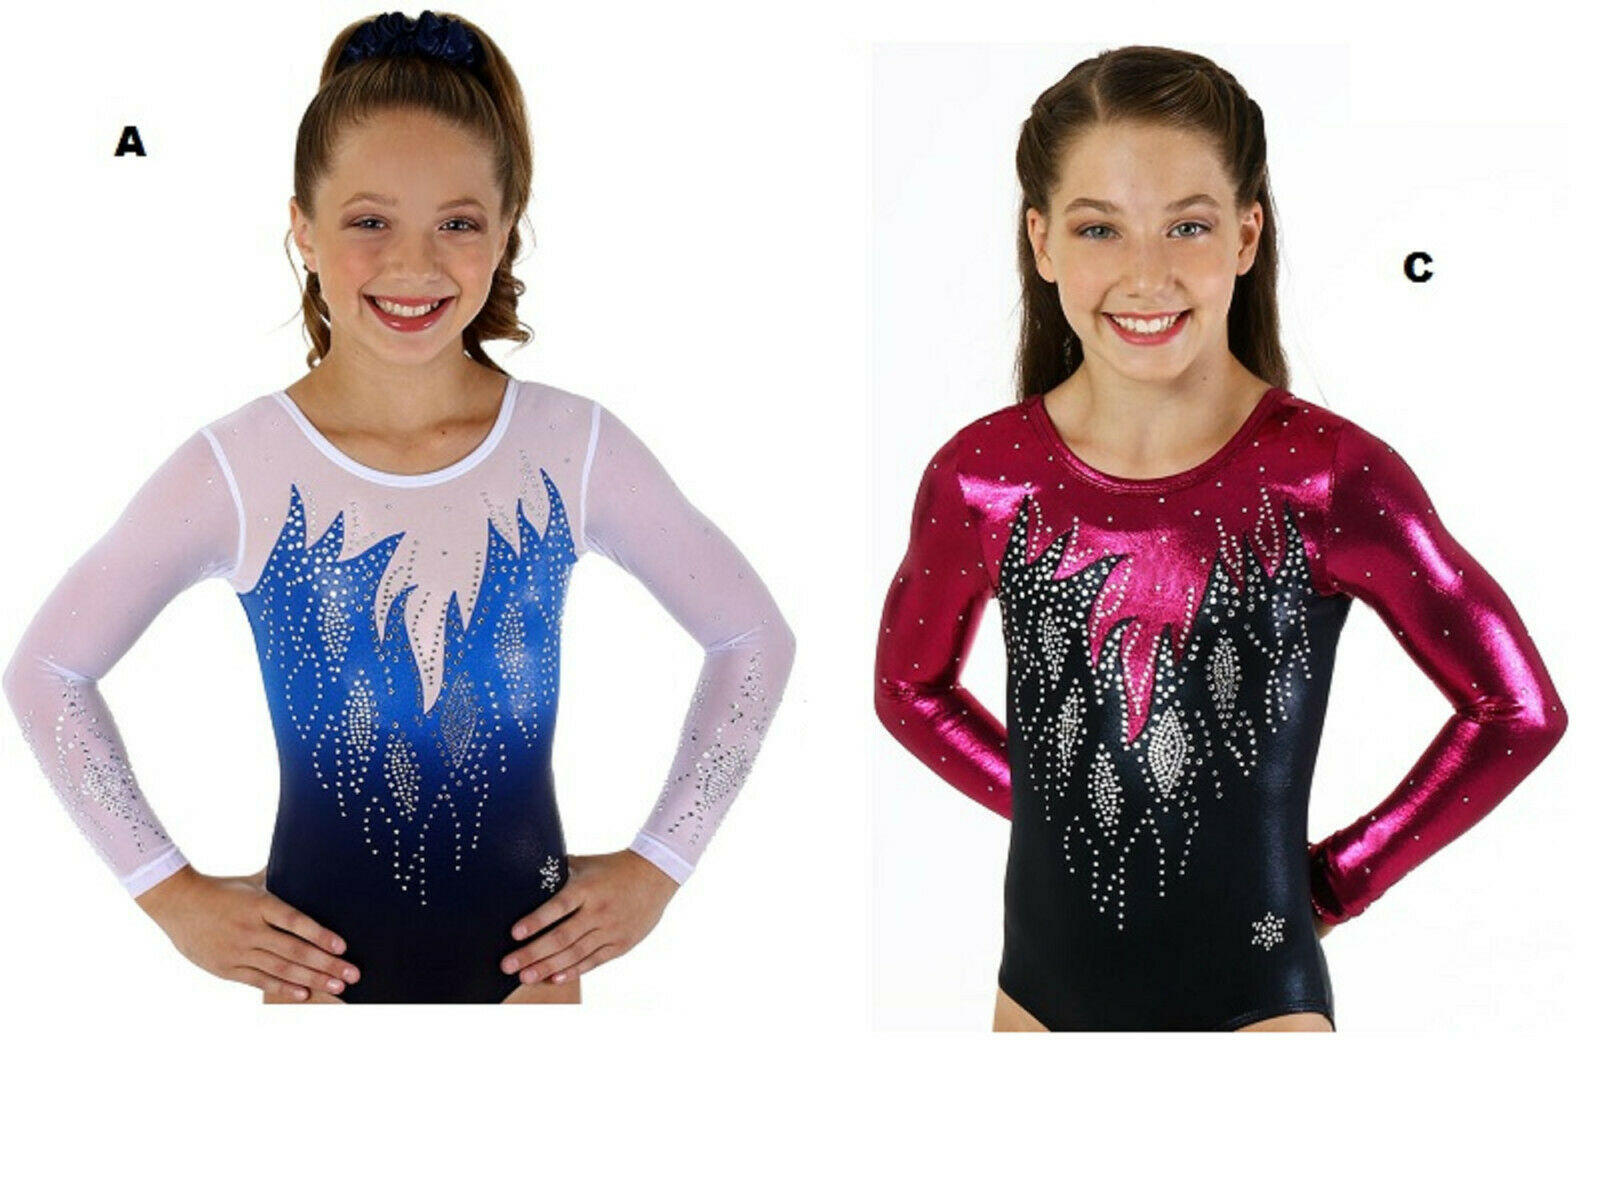 NEW  Icy Gymnastics Competition Leotard by  Snowflake Designs  the latest